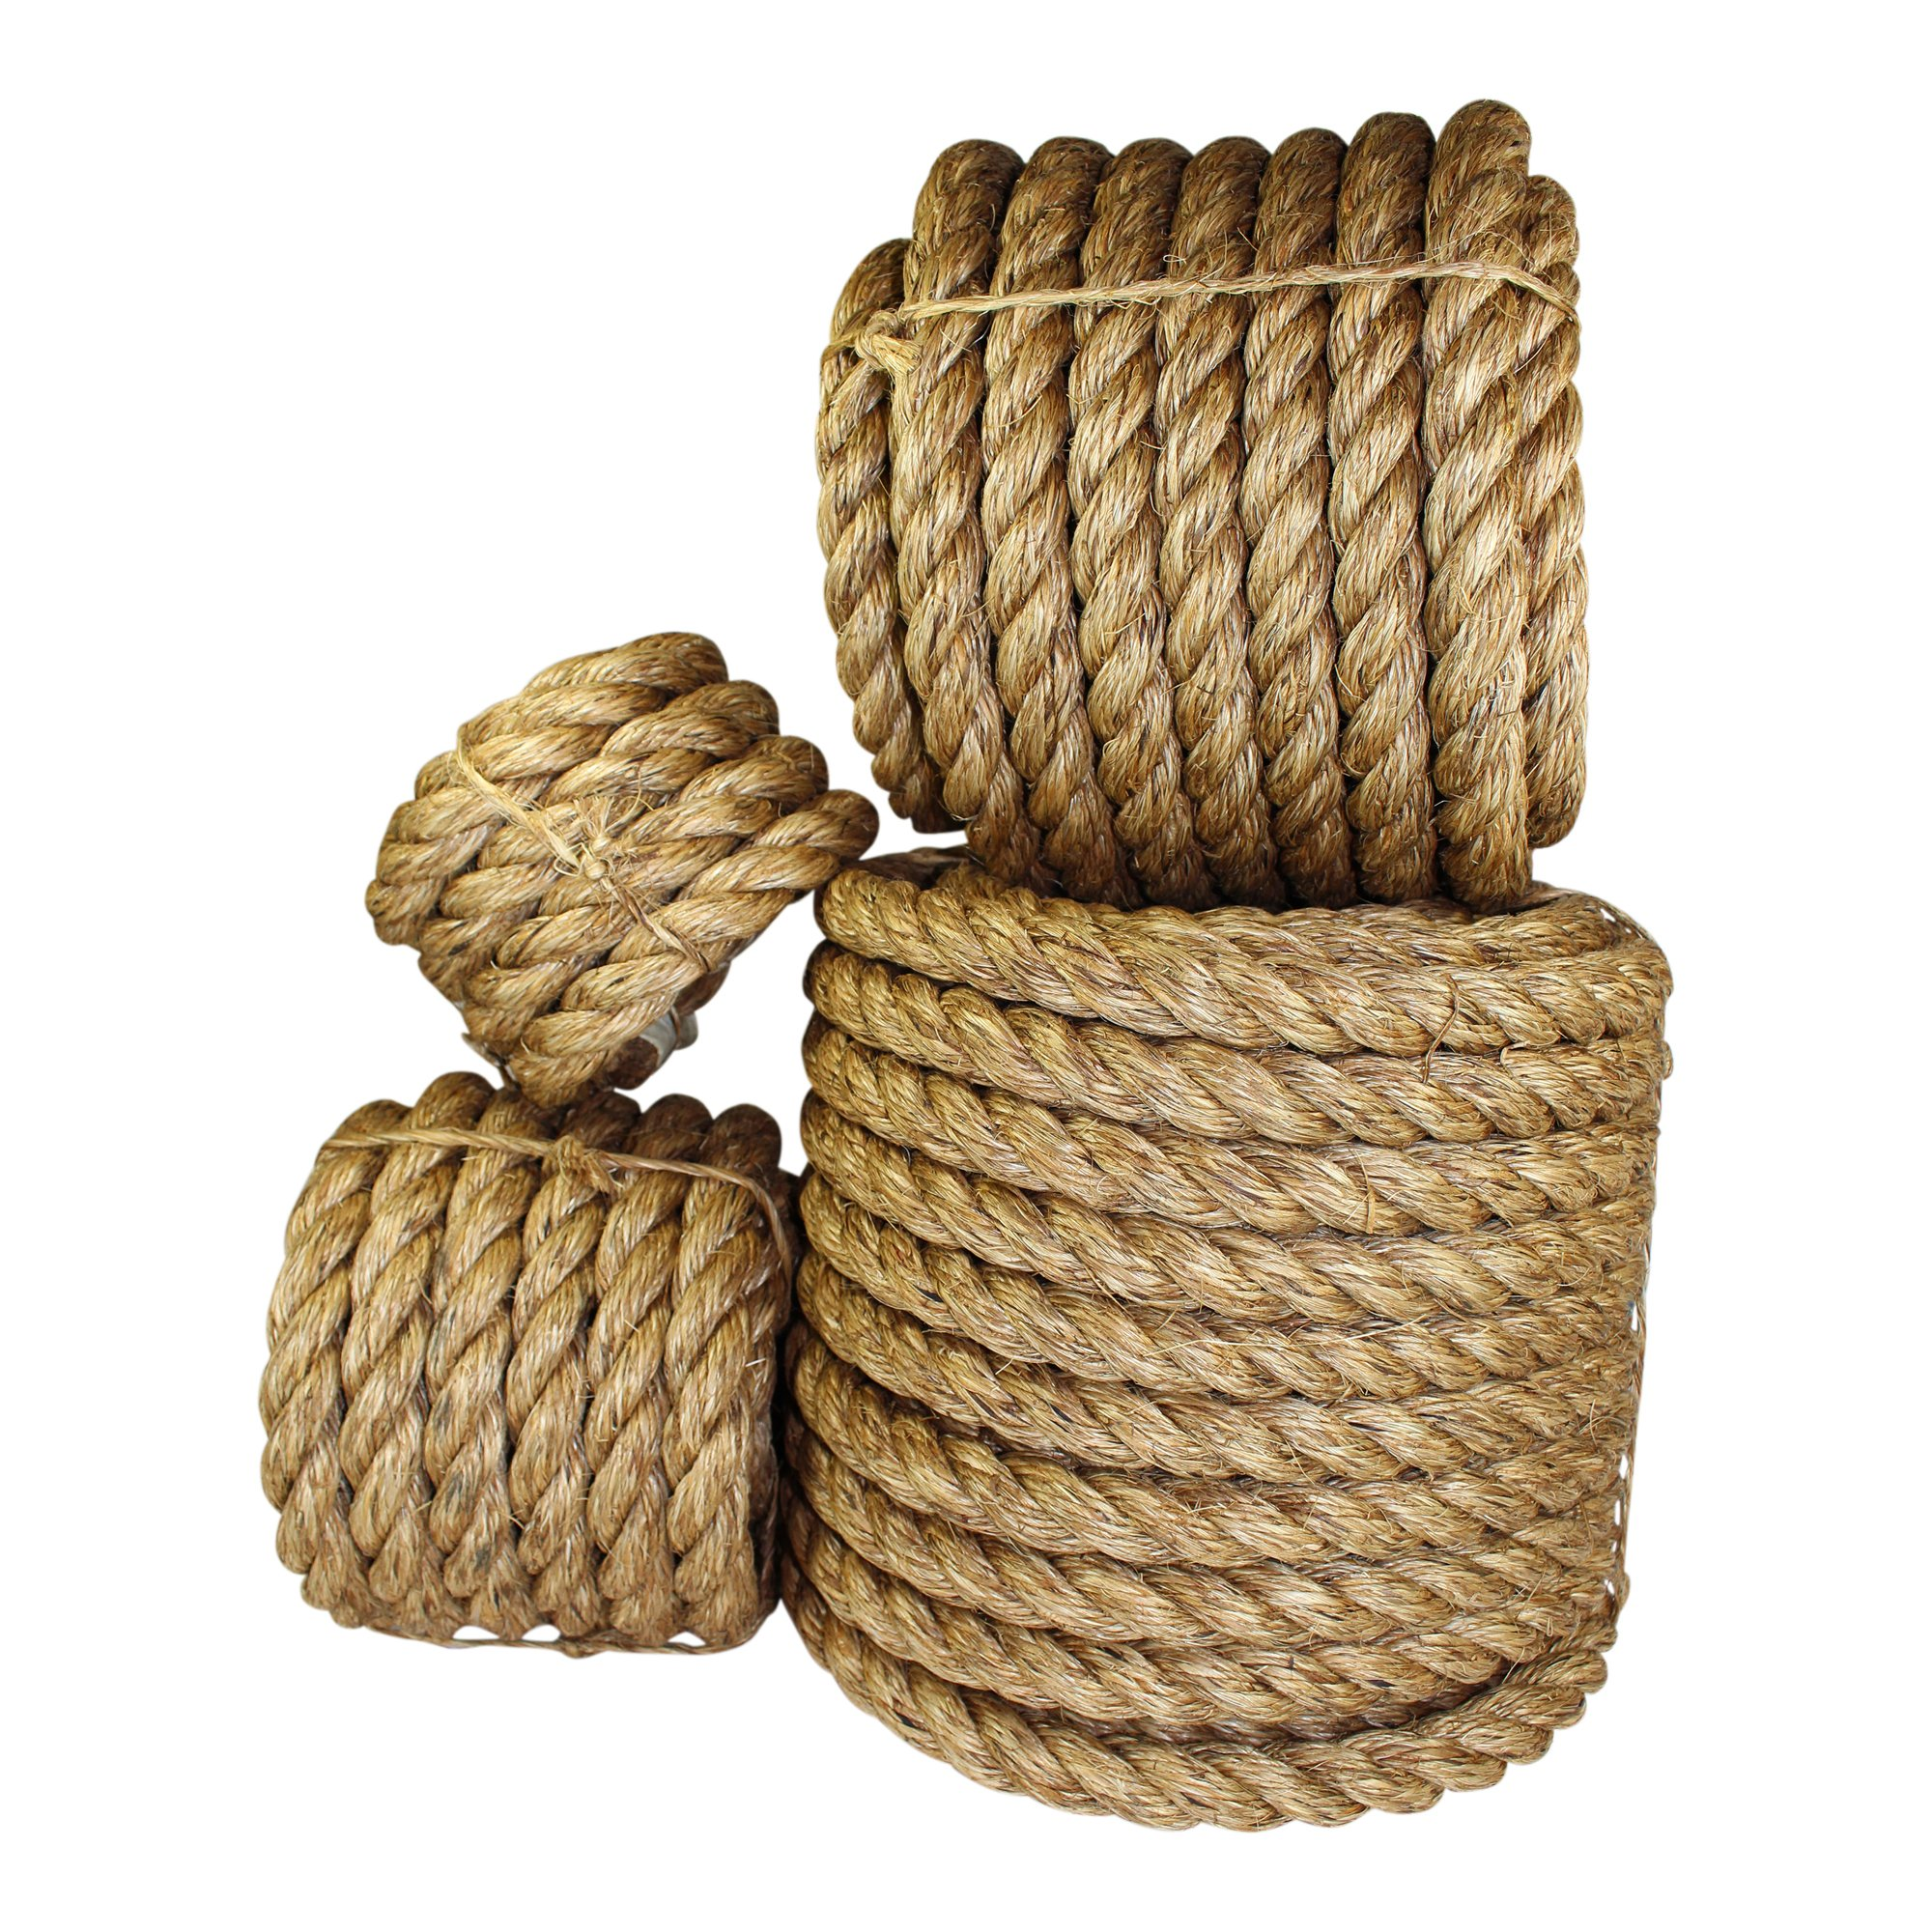 Twisted Manila Rope Hemp Rope (1 in x 50 ft) - SGT KNOTS - Tan Brown Natural Rope - Thick Heavy Duty Rustic Outdoor Cordage for Craft, Dock, Decorative Landscaping, Climbing, Tree Hanging Swing